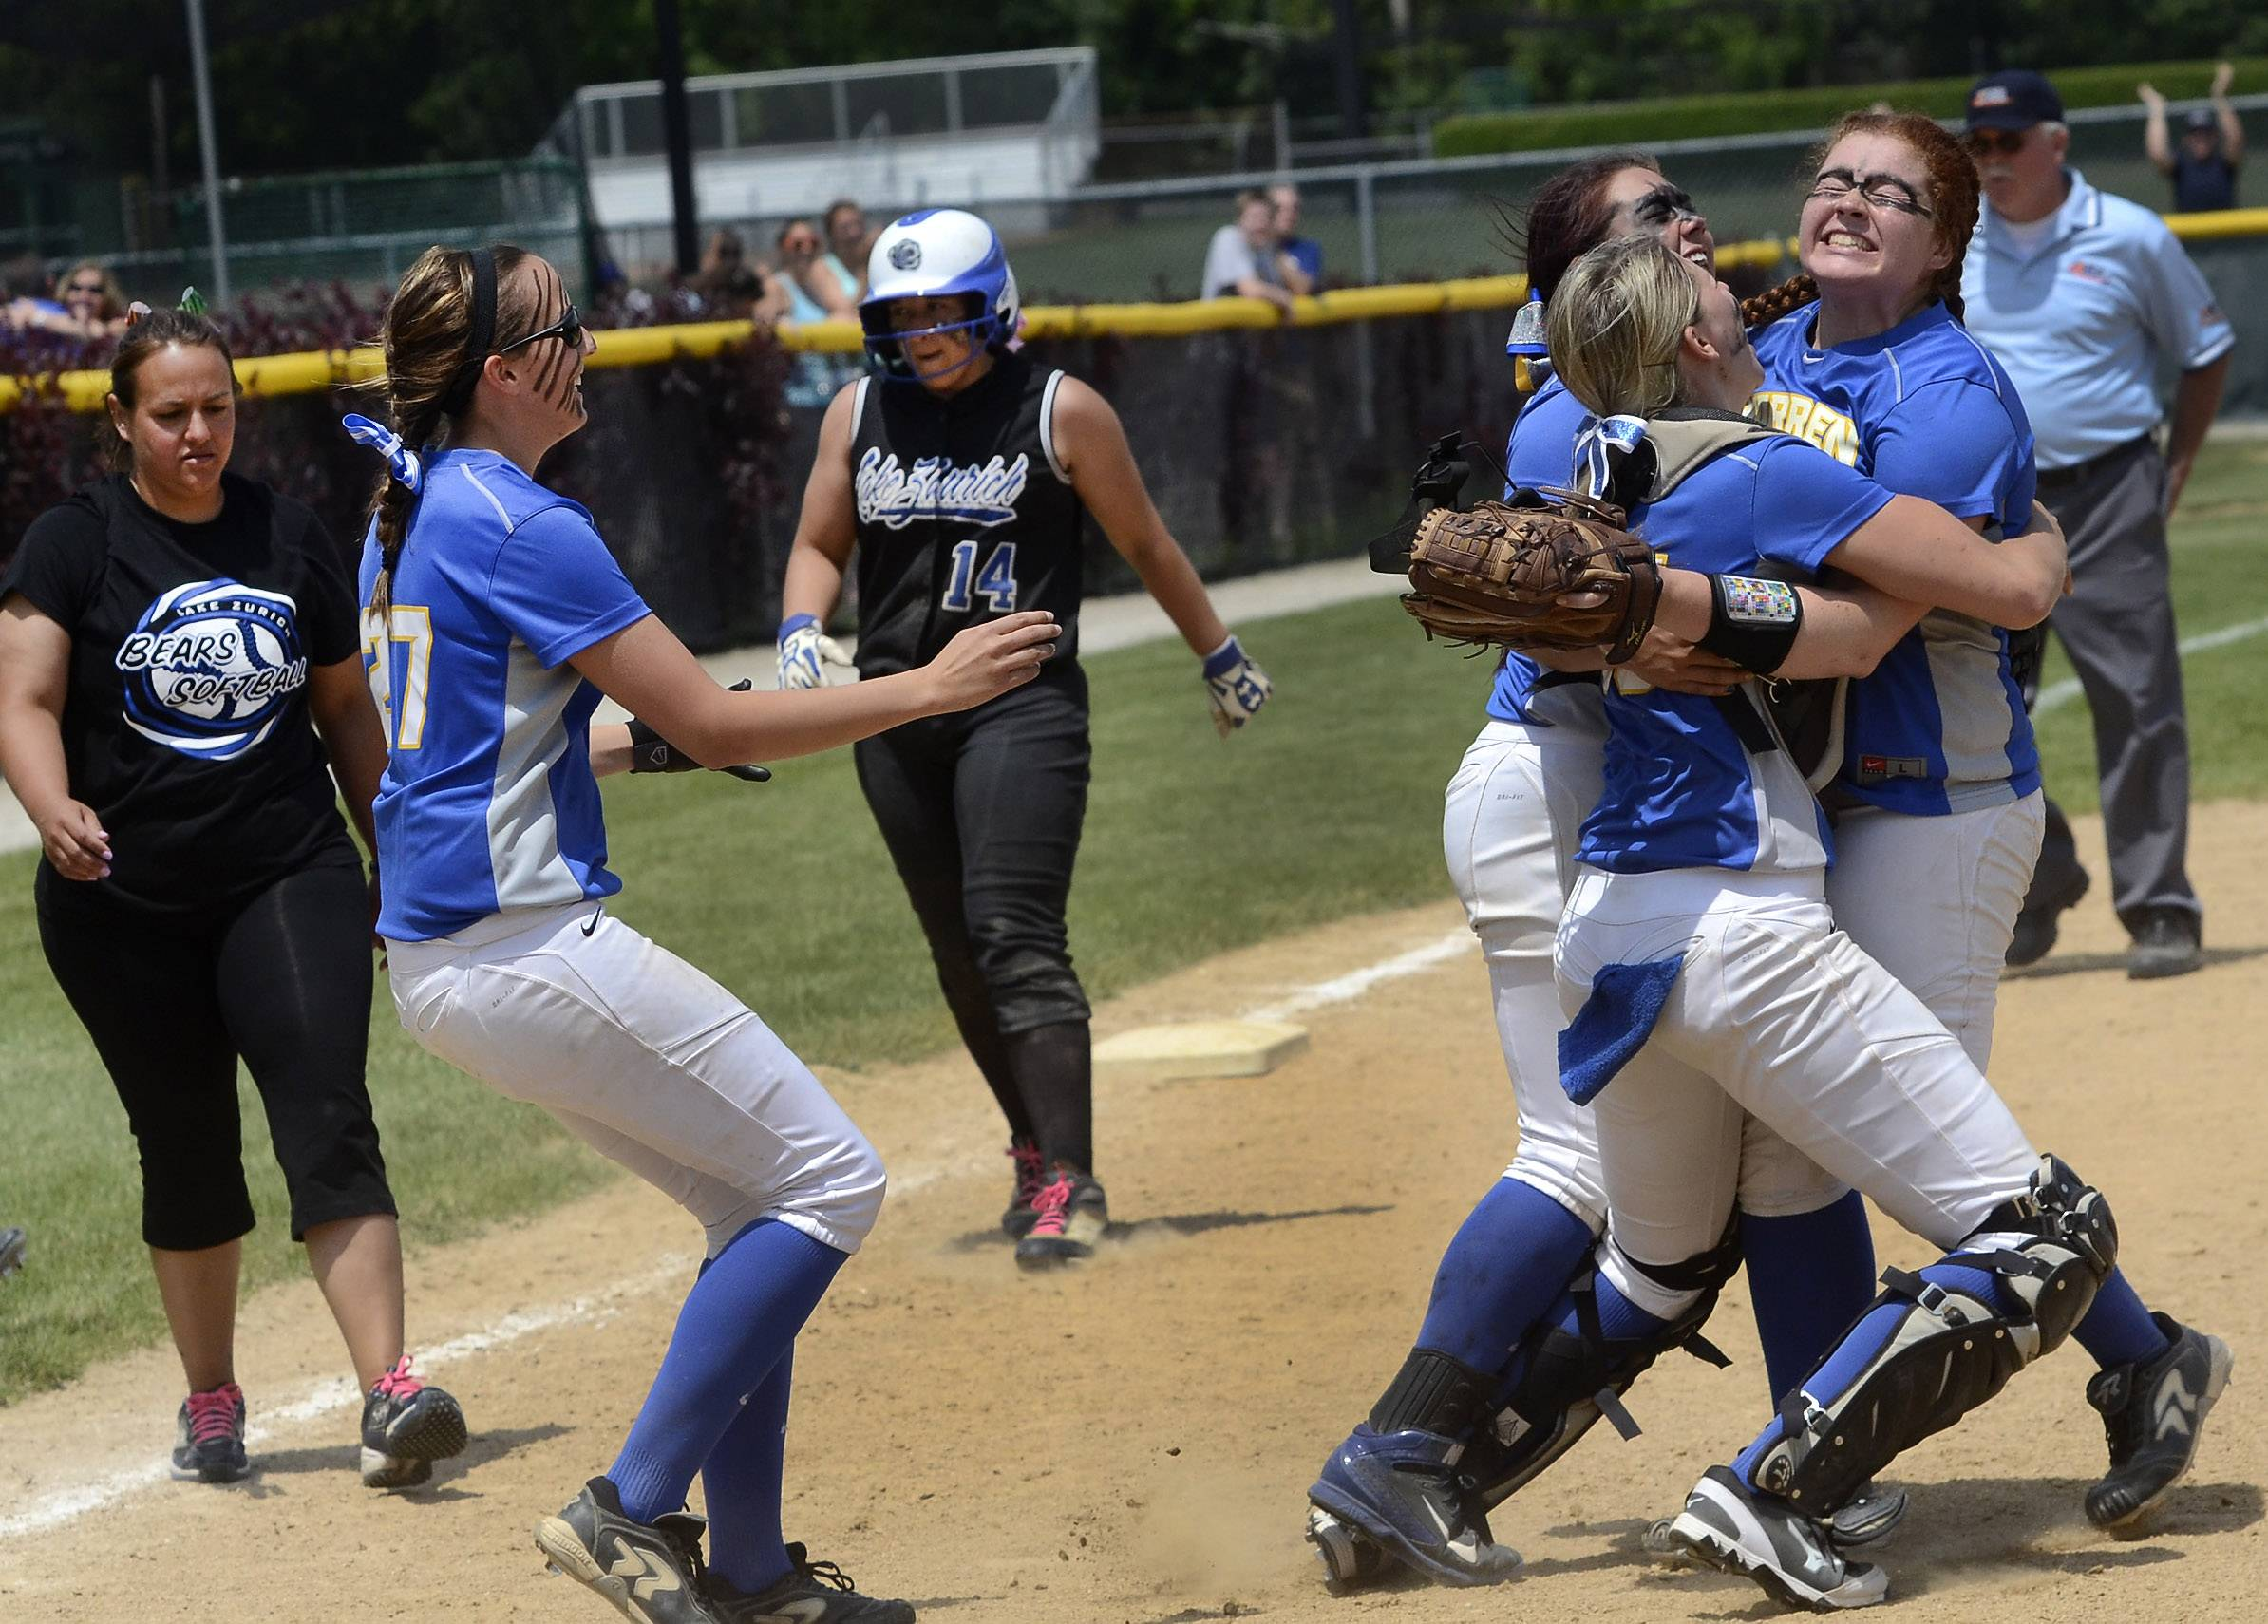 Warren players celebrate after capturing the Class 4A Stevenson softball sectional title over Lake Zurich.